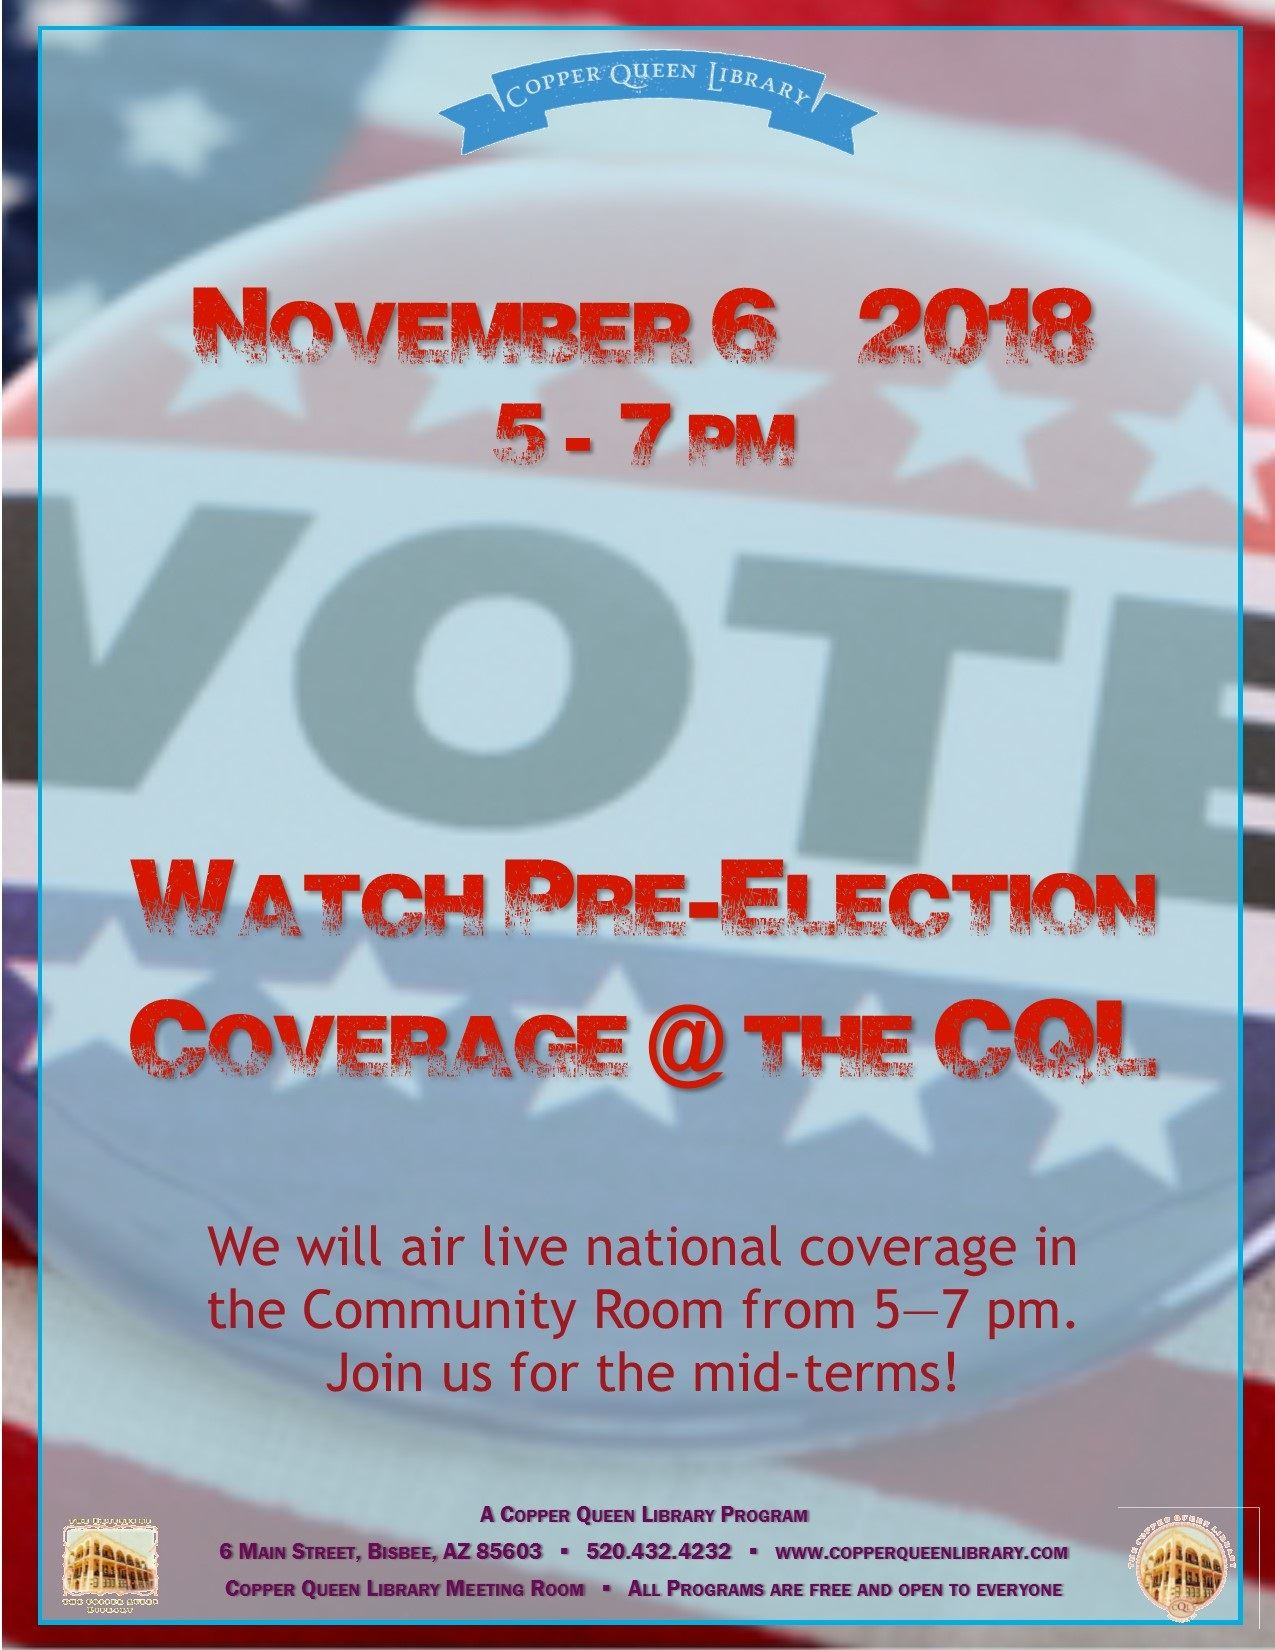 PRE-ELECTION COVERAGE 11.6.18 8.5 x 11